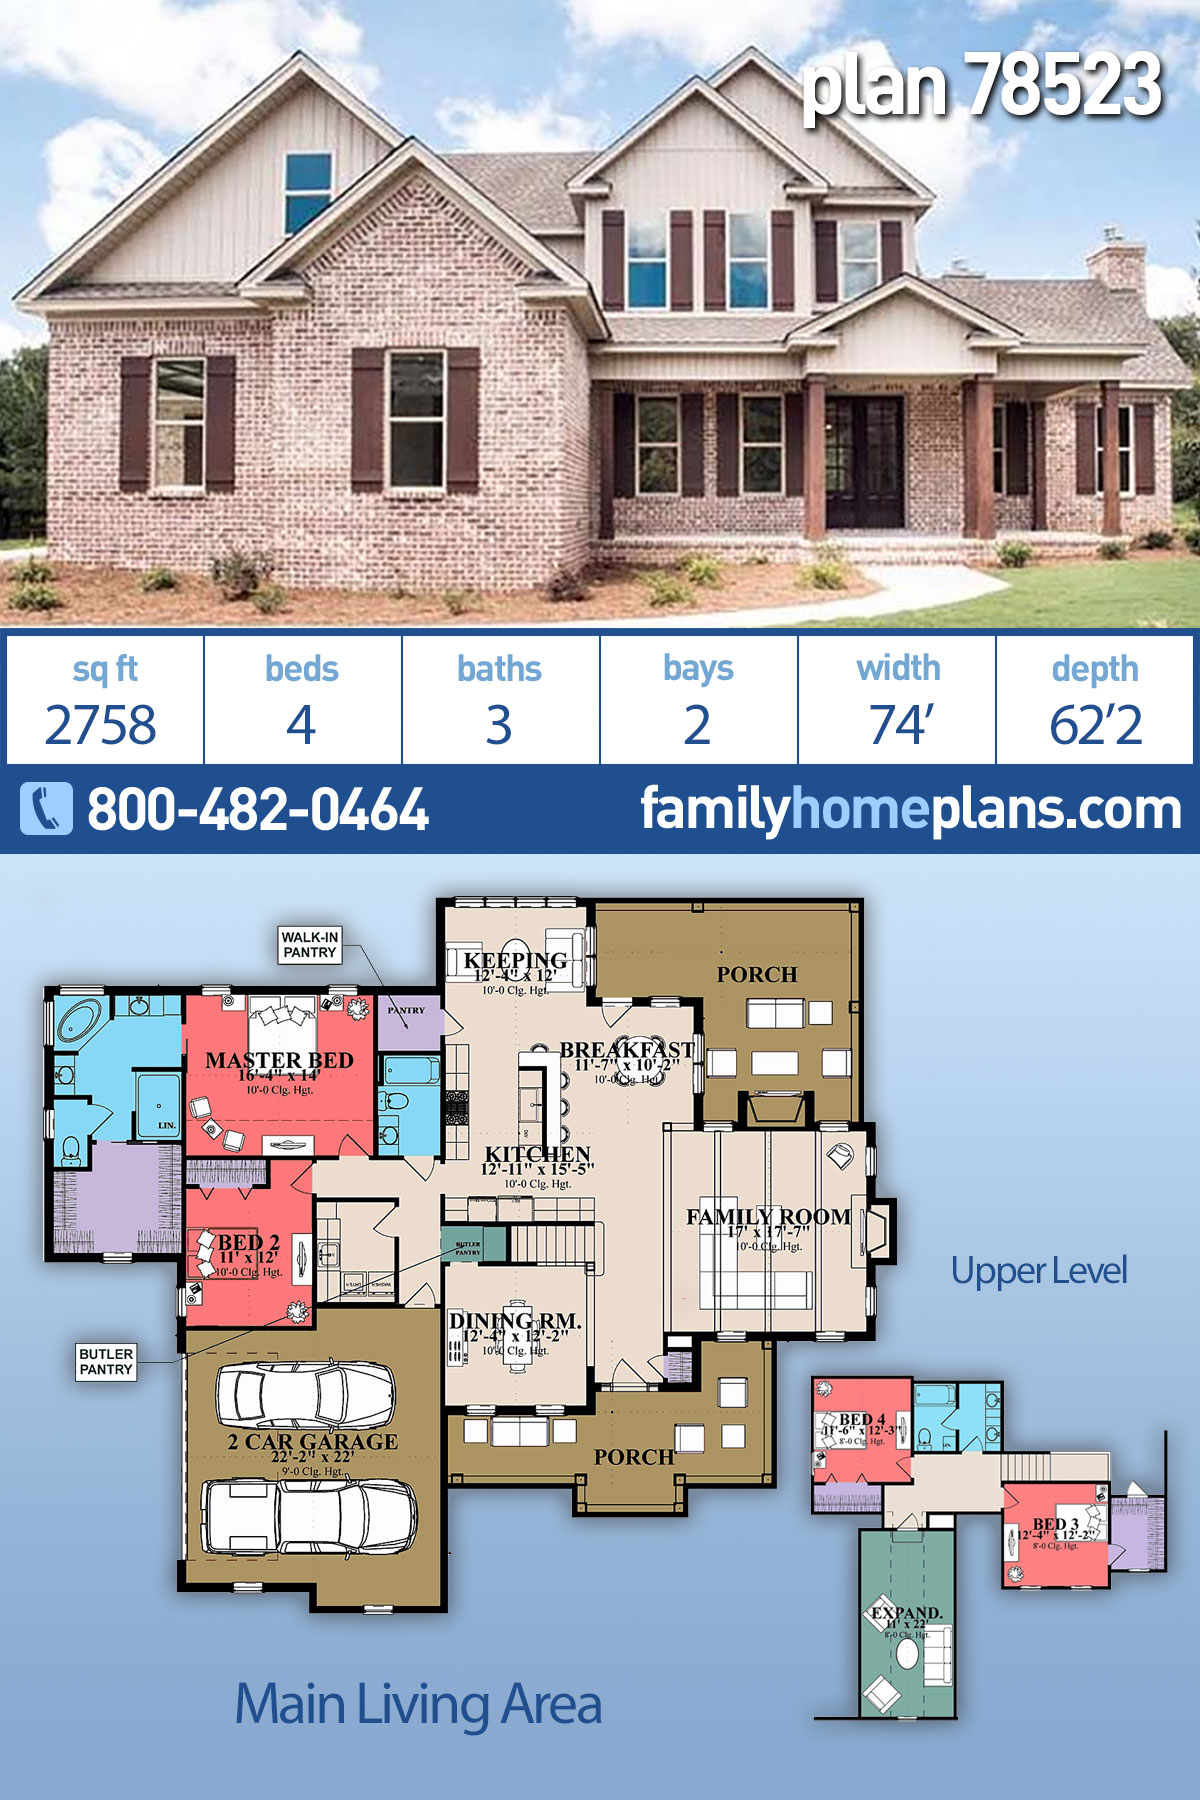 Farmhouse, Ranch, Traditional House Plan 78523 with 4 Beds, 3 Baths, 2 Car Garage